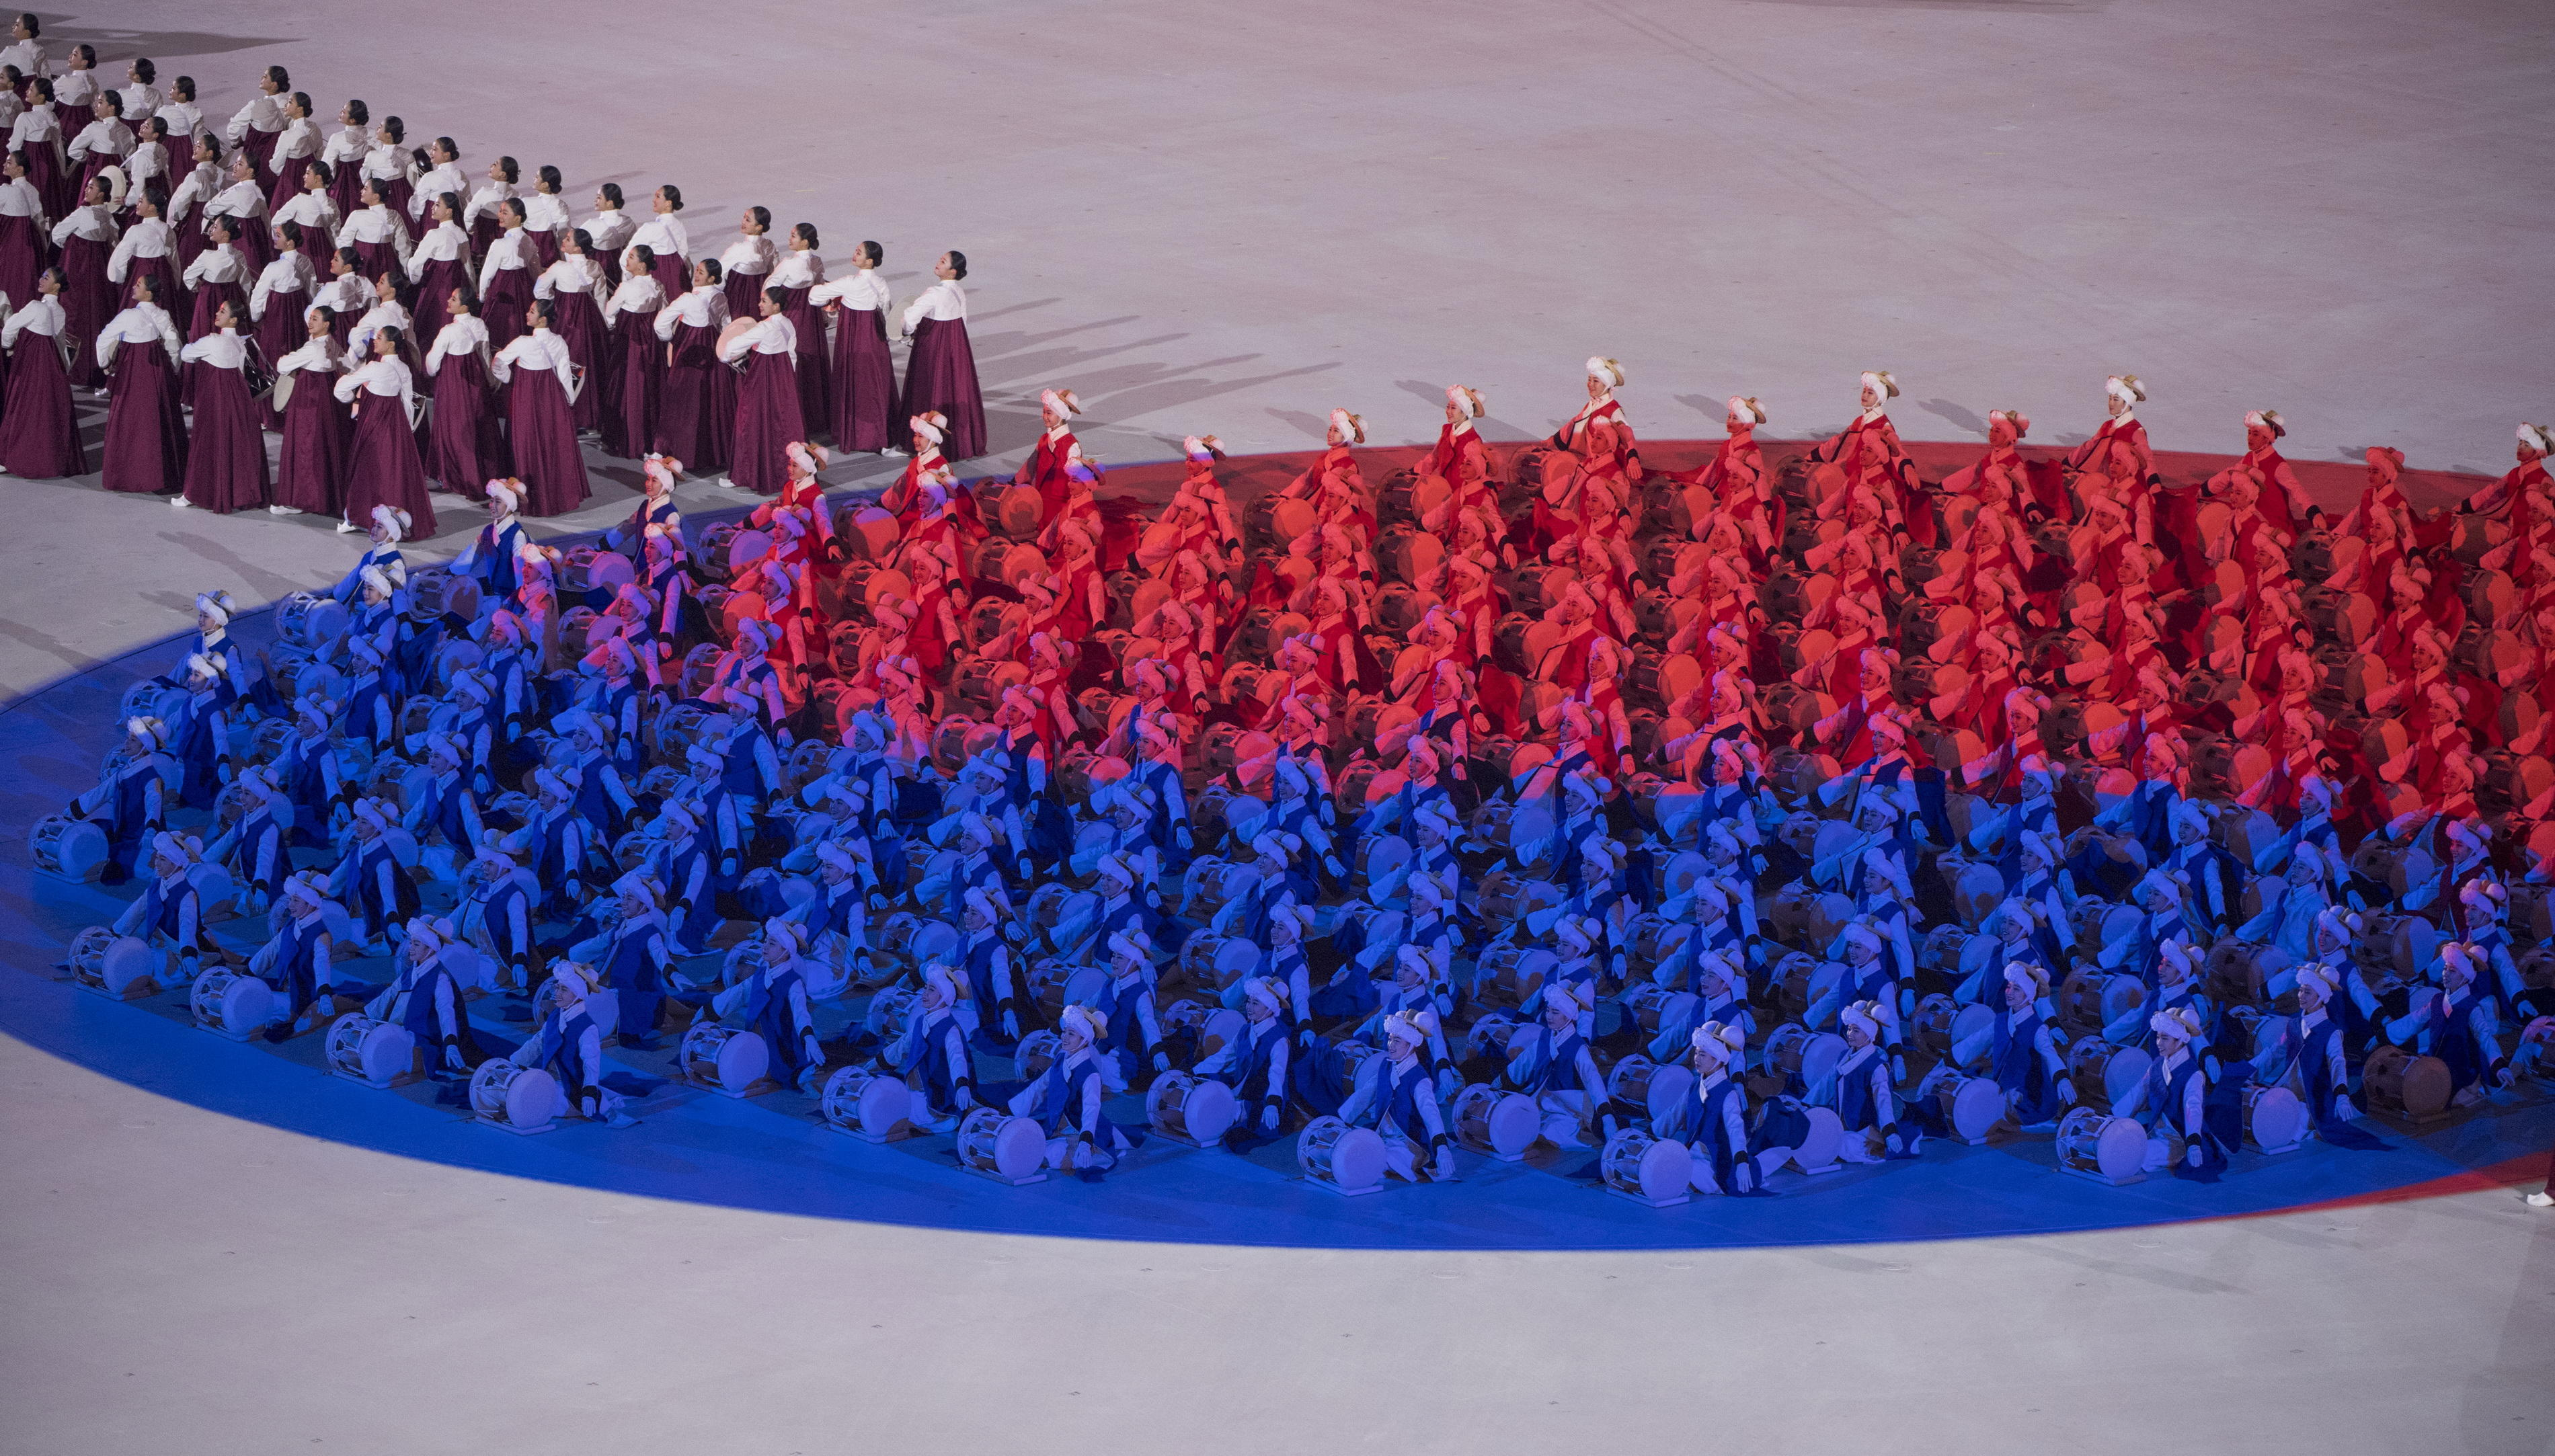 PyeongChang 2018 Winter Olympic Games Opening Ceremony